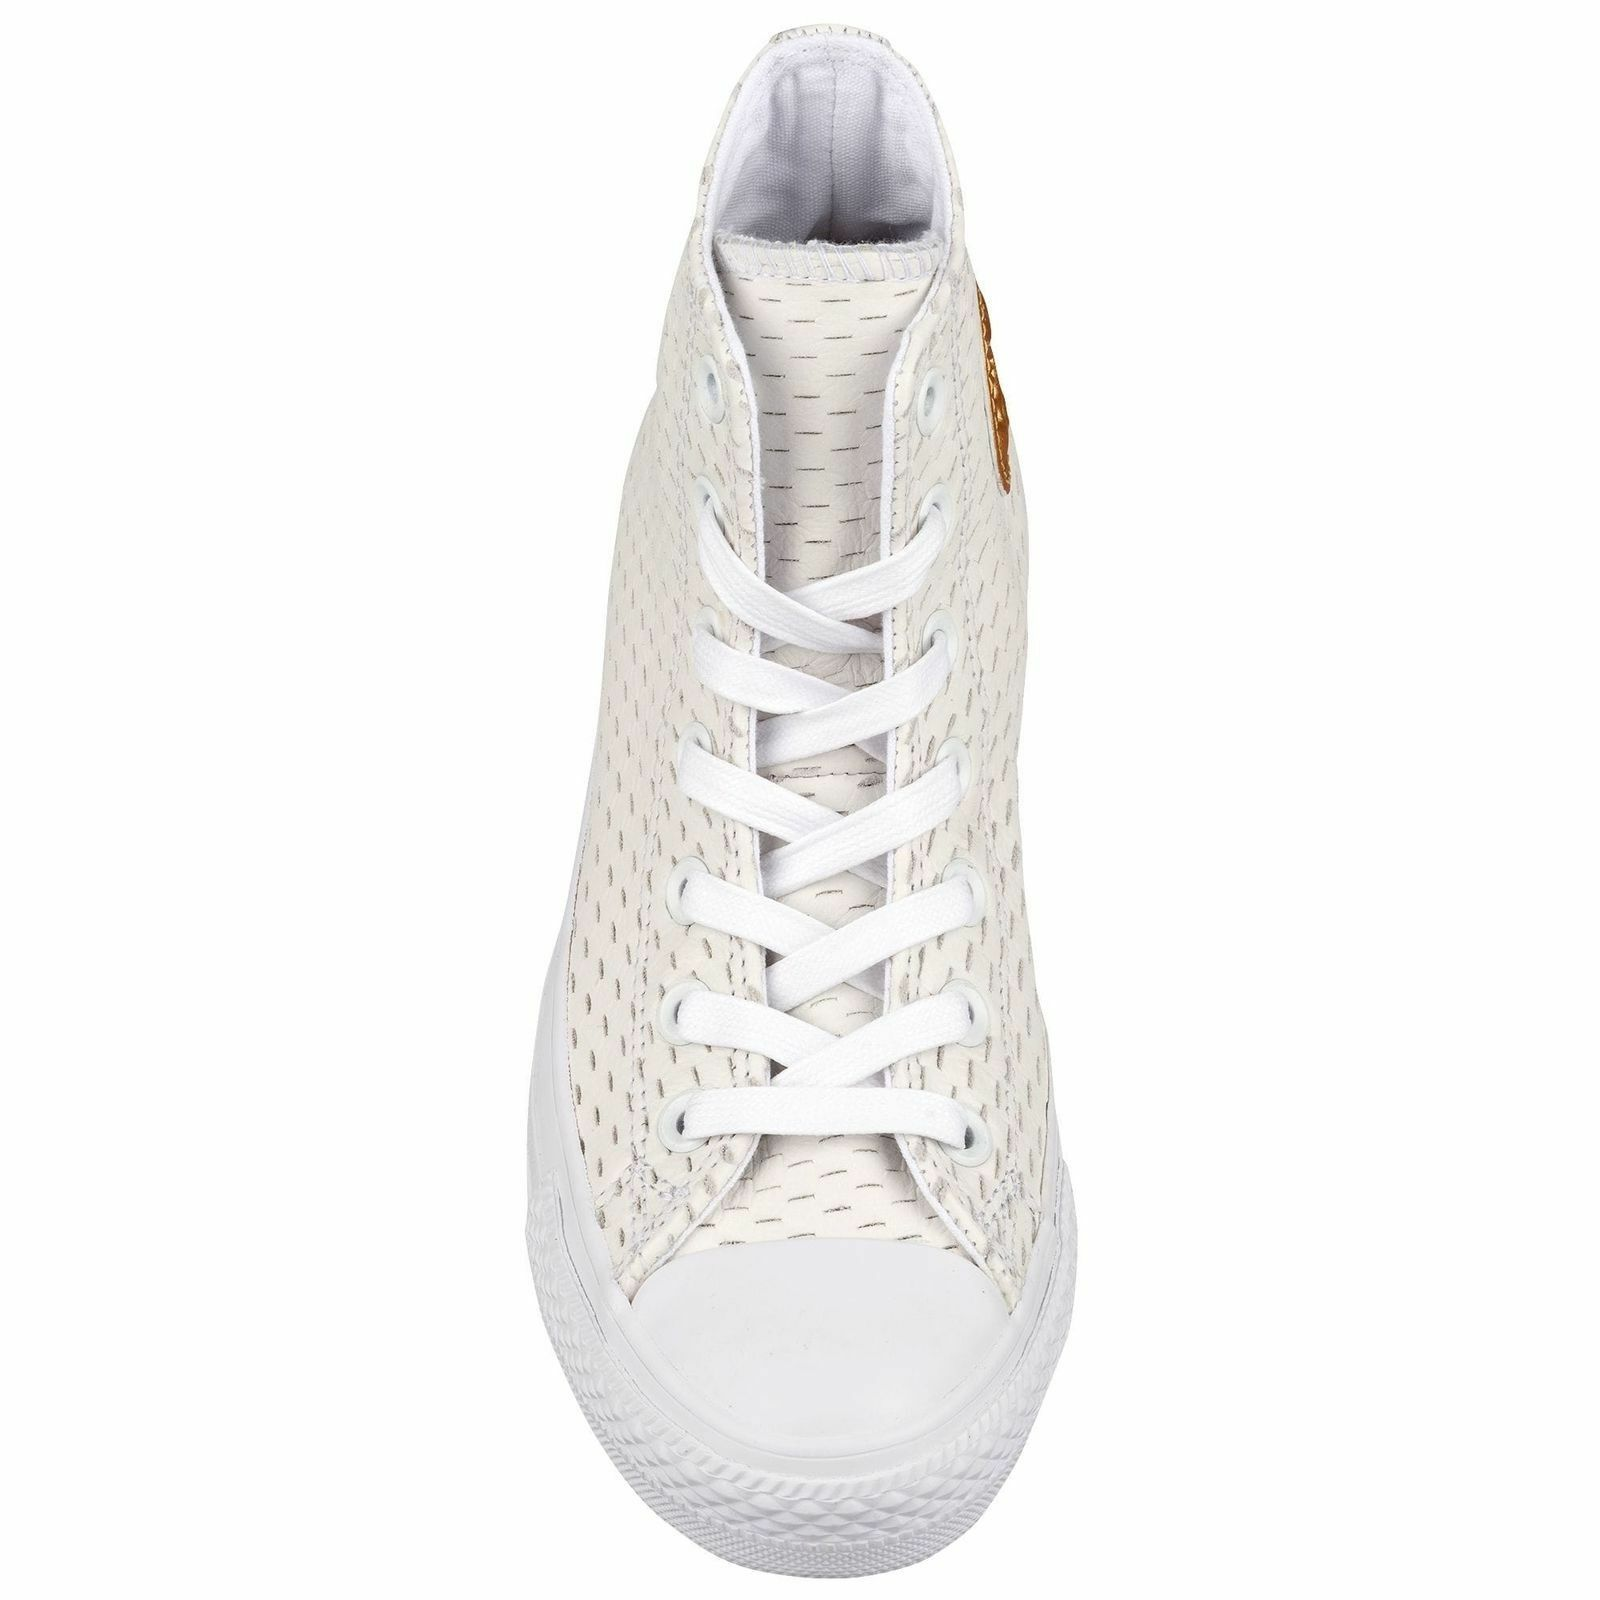 Converse All Star Leather High White Out Pack White/Gold 153115C Mens Shoe image 4